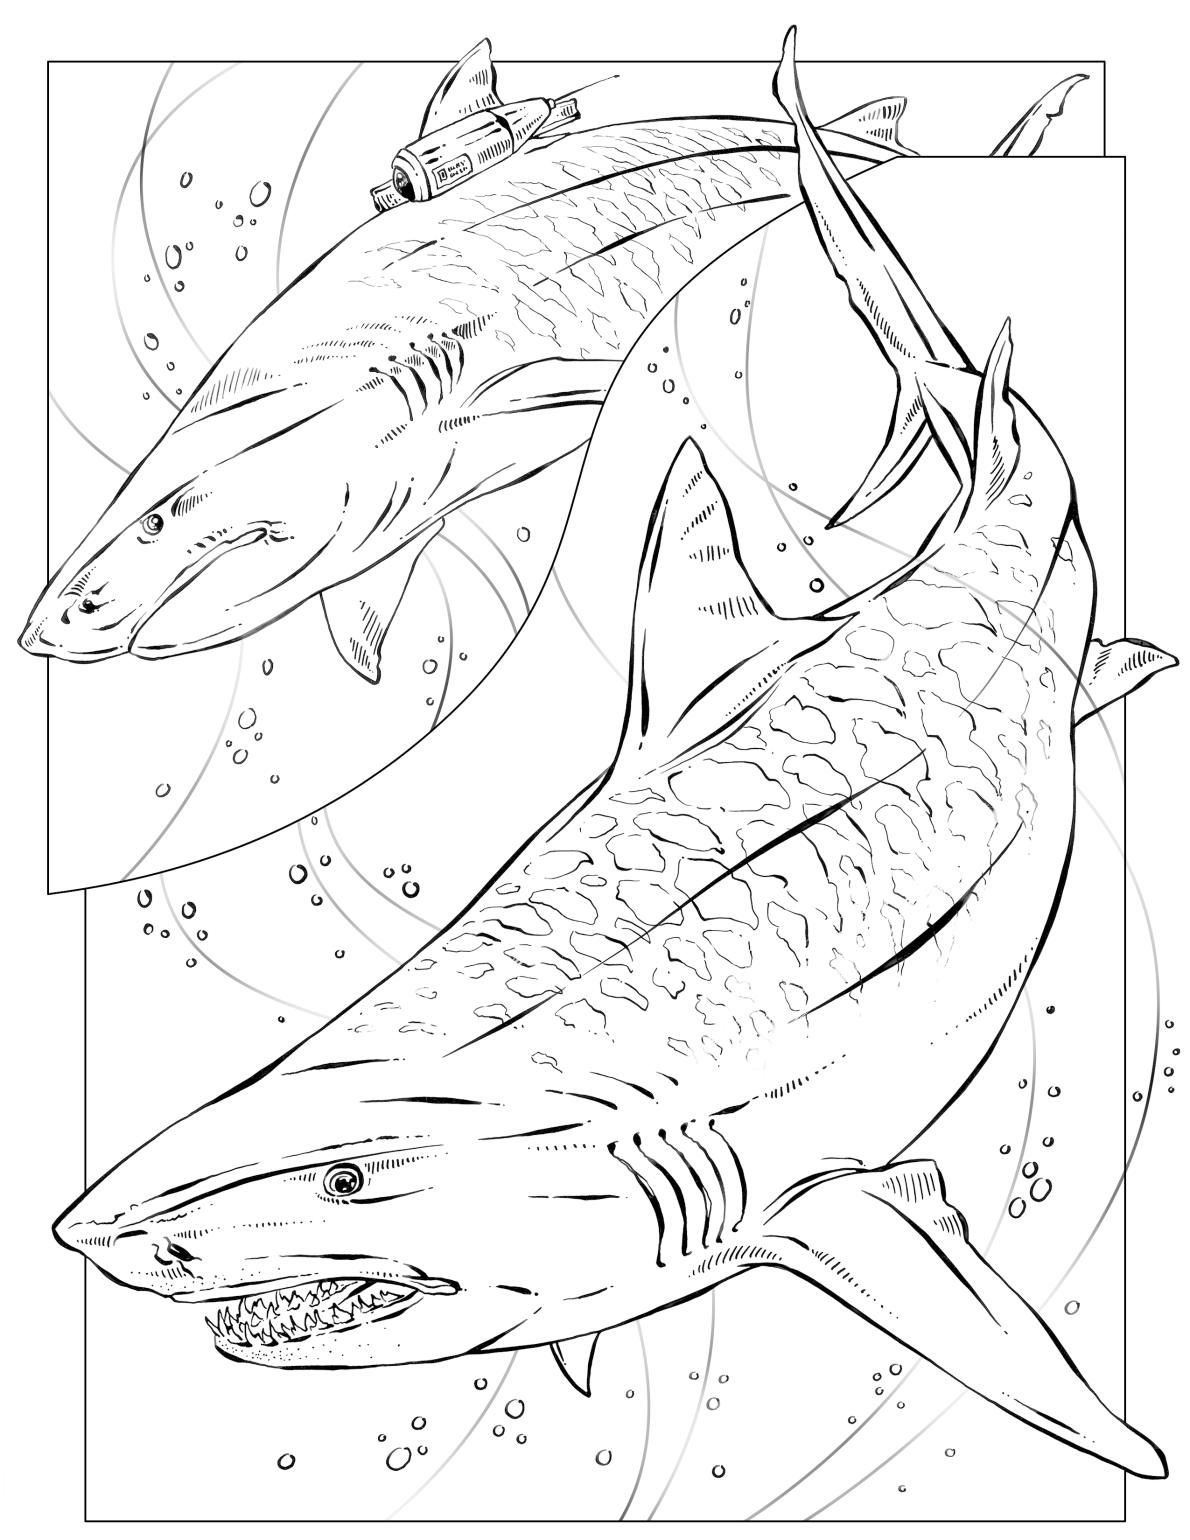 Coloring Book Animals J To Z Shark Coloring Pages Shark Drawing Coloring Pages